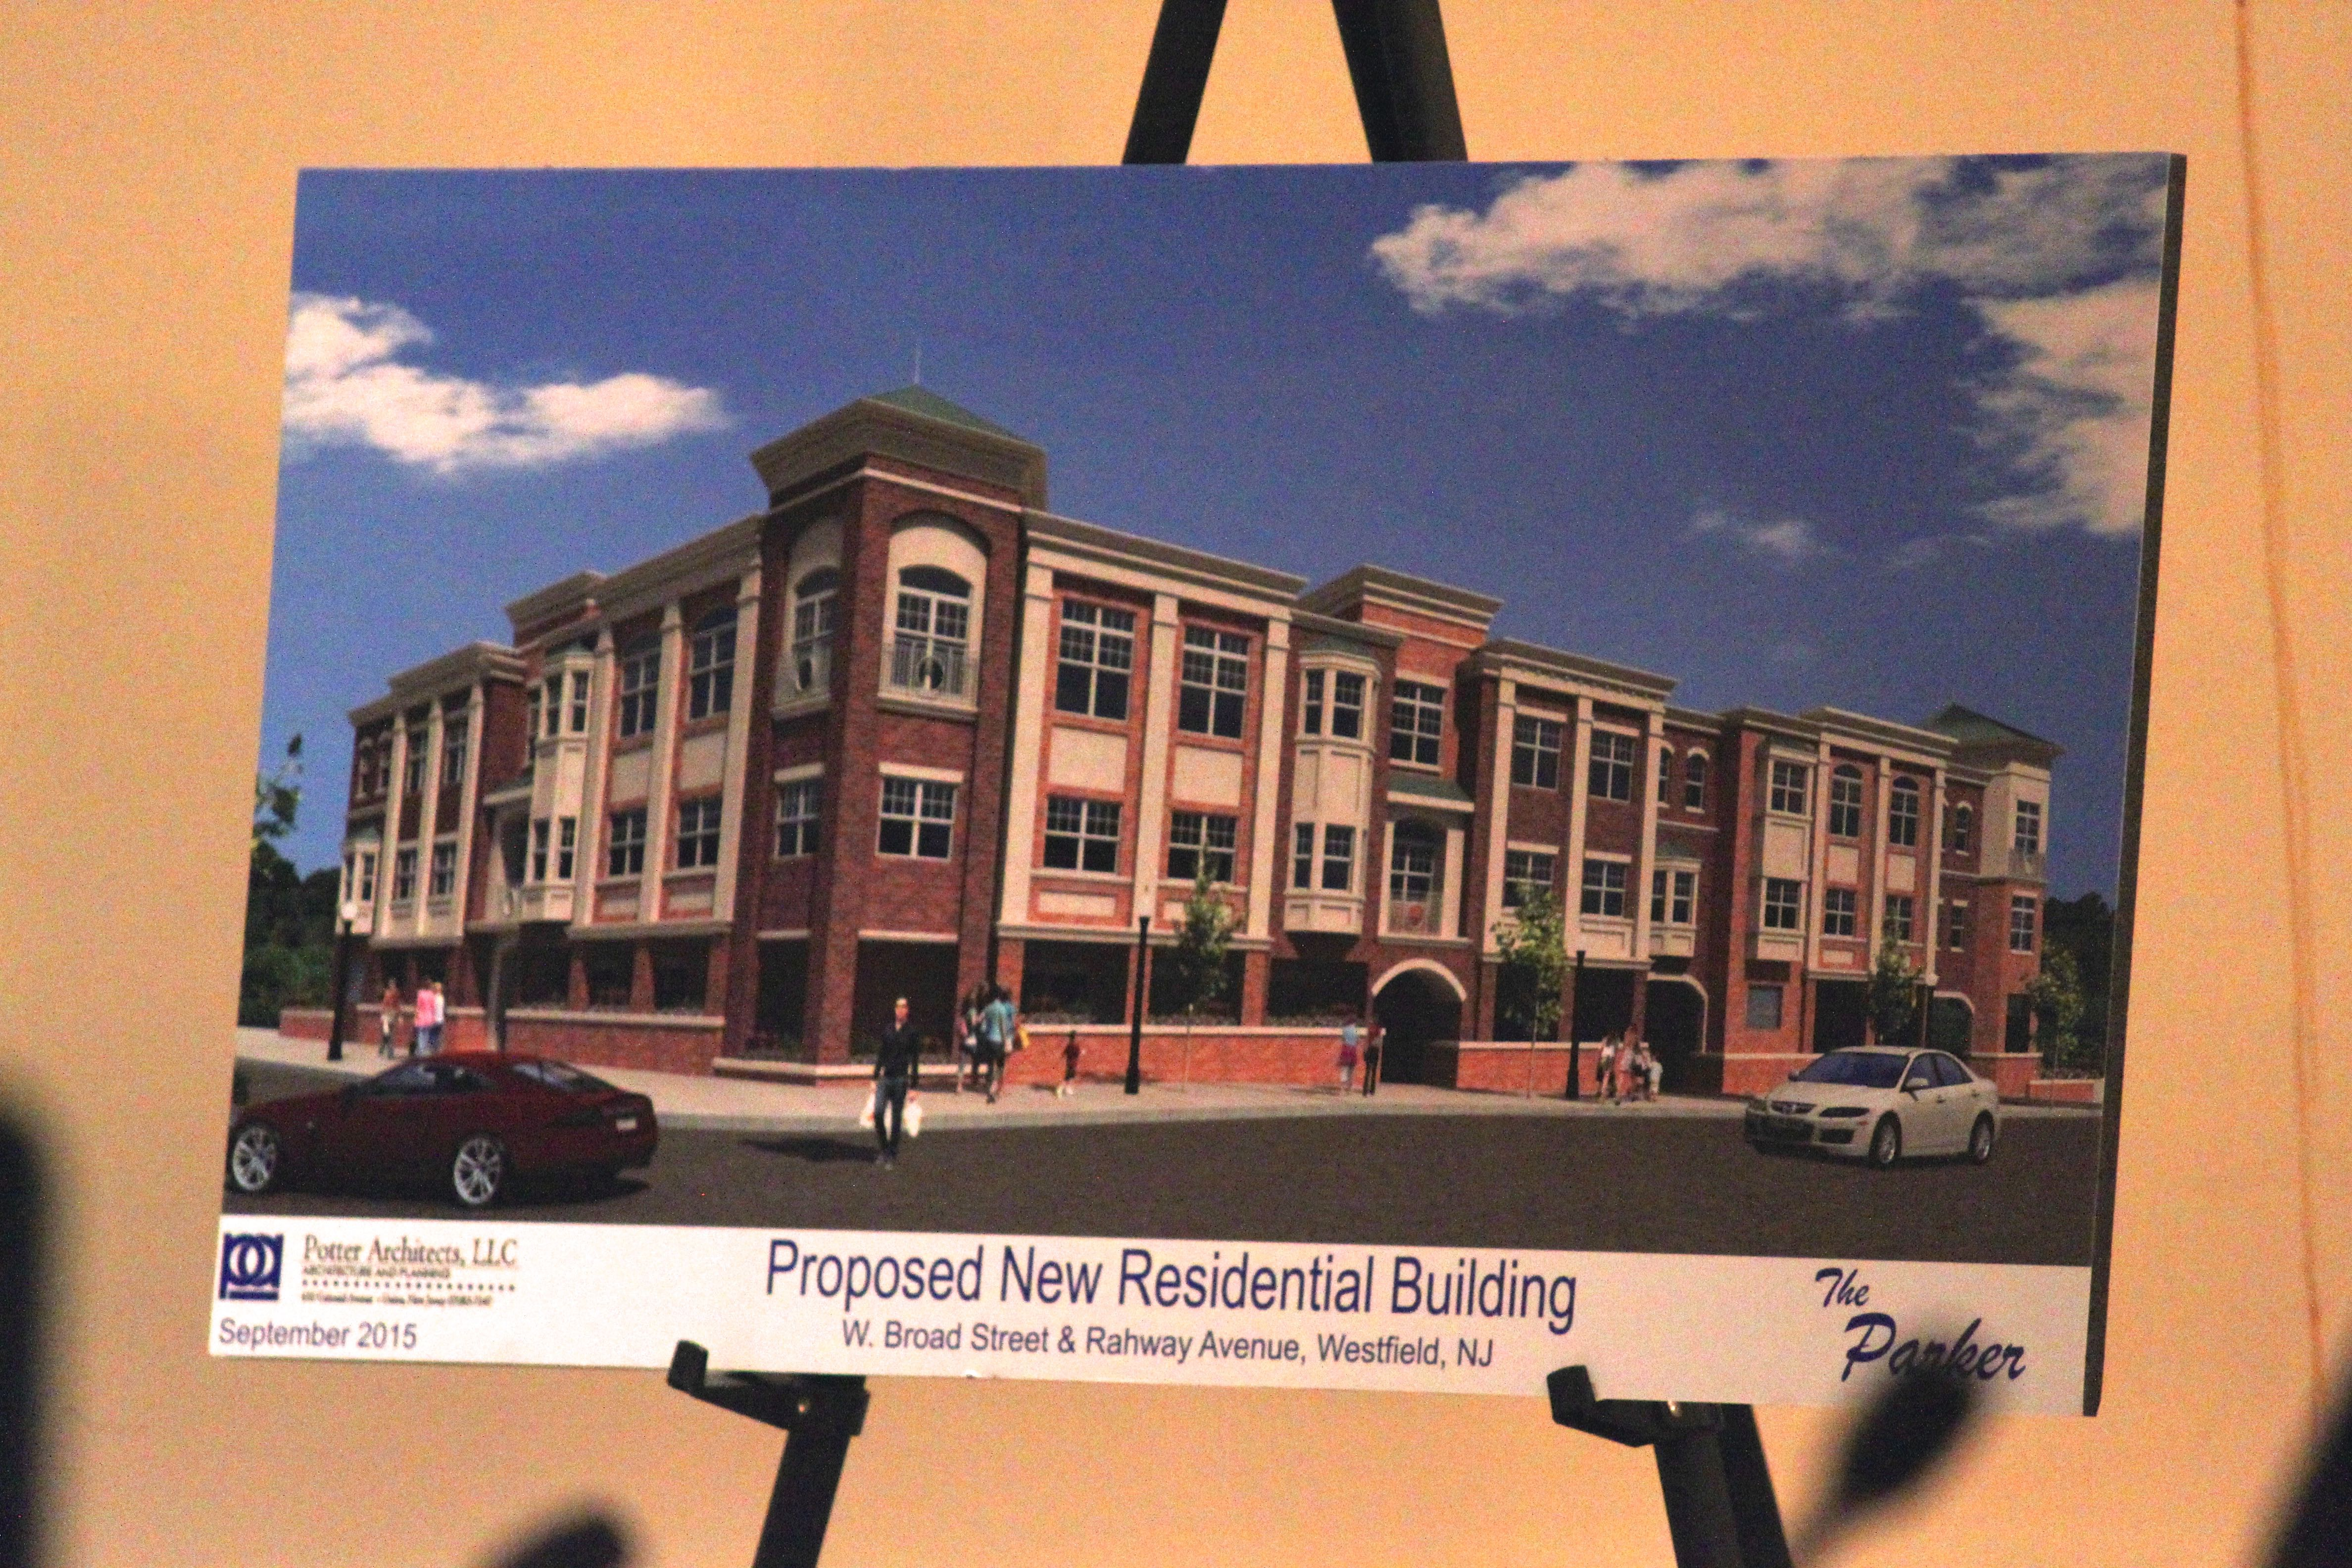 Westfield Planning Board Approves 31 Unit Apartment plex on W